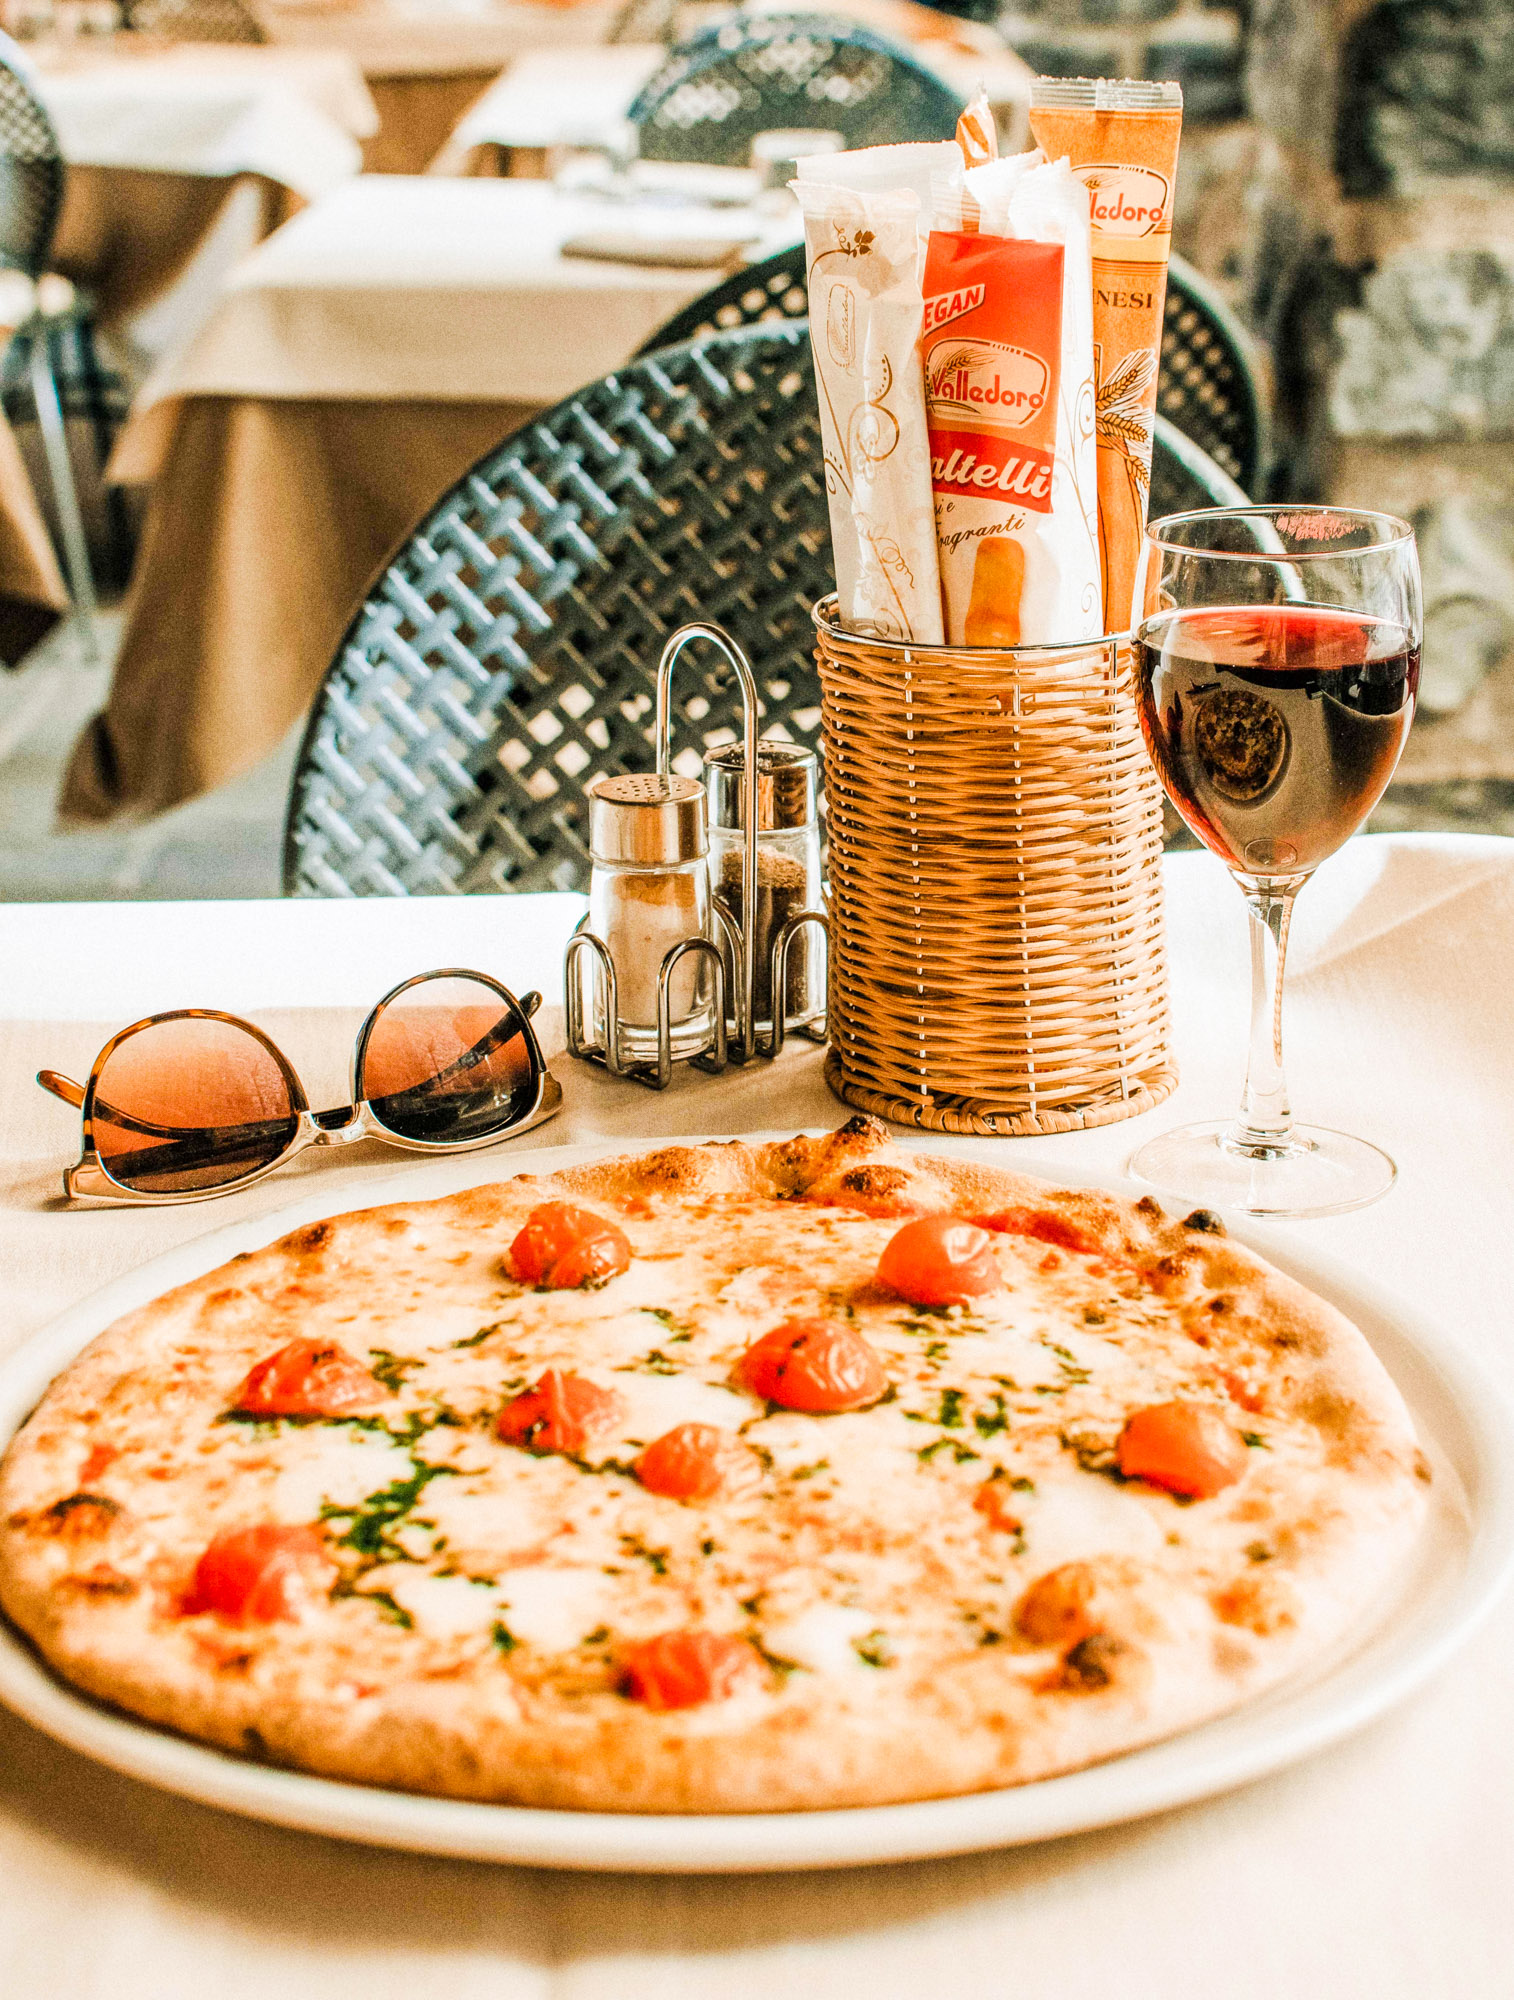 Pizza - Bellagio - Sicily - Italy - Jeff On The Road - Photo by Fallon Travels on Unsplash - https://unsplash.com/photos/W01Qwuhb_l4